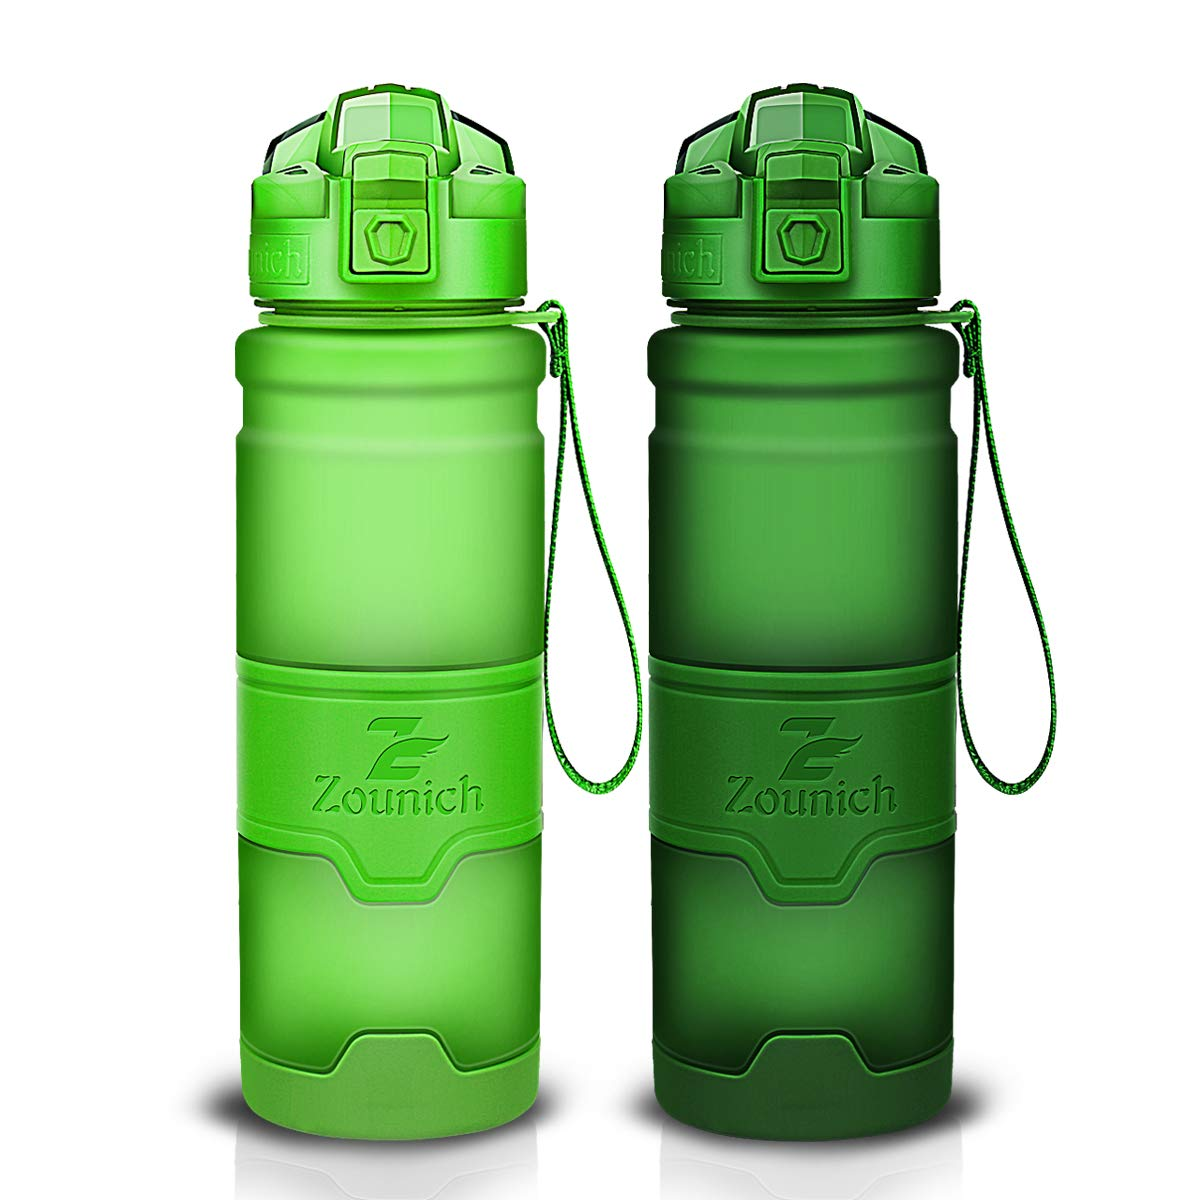 Sports Water Bottle Plastic Drinking Bottles BPA Free Leakproof with filter&time marker&Scratch Resistant,Flip Top With 1 Click Reusable For Kids,400/500/700ml/1L,60oz,for Outdoor,Cycling,Camping,Gym